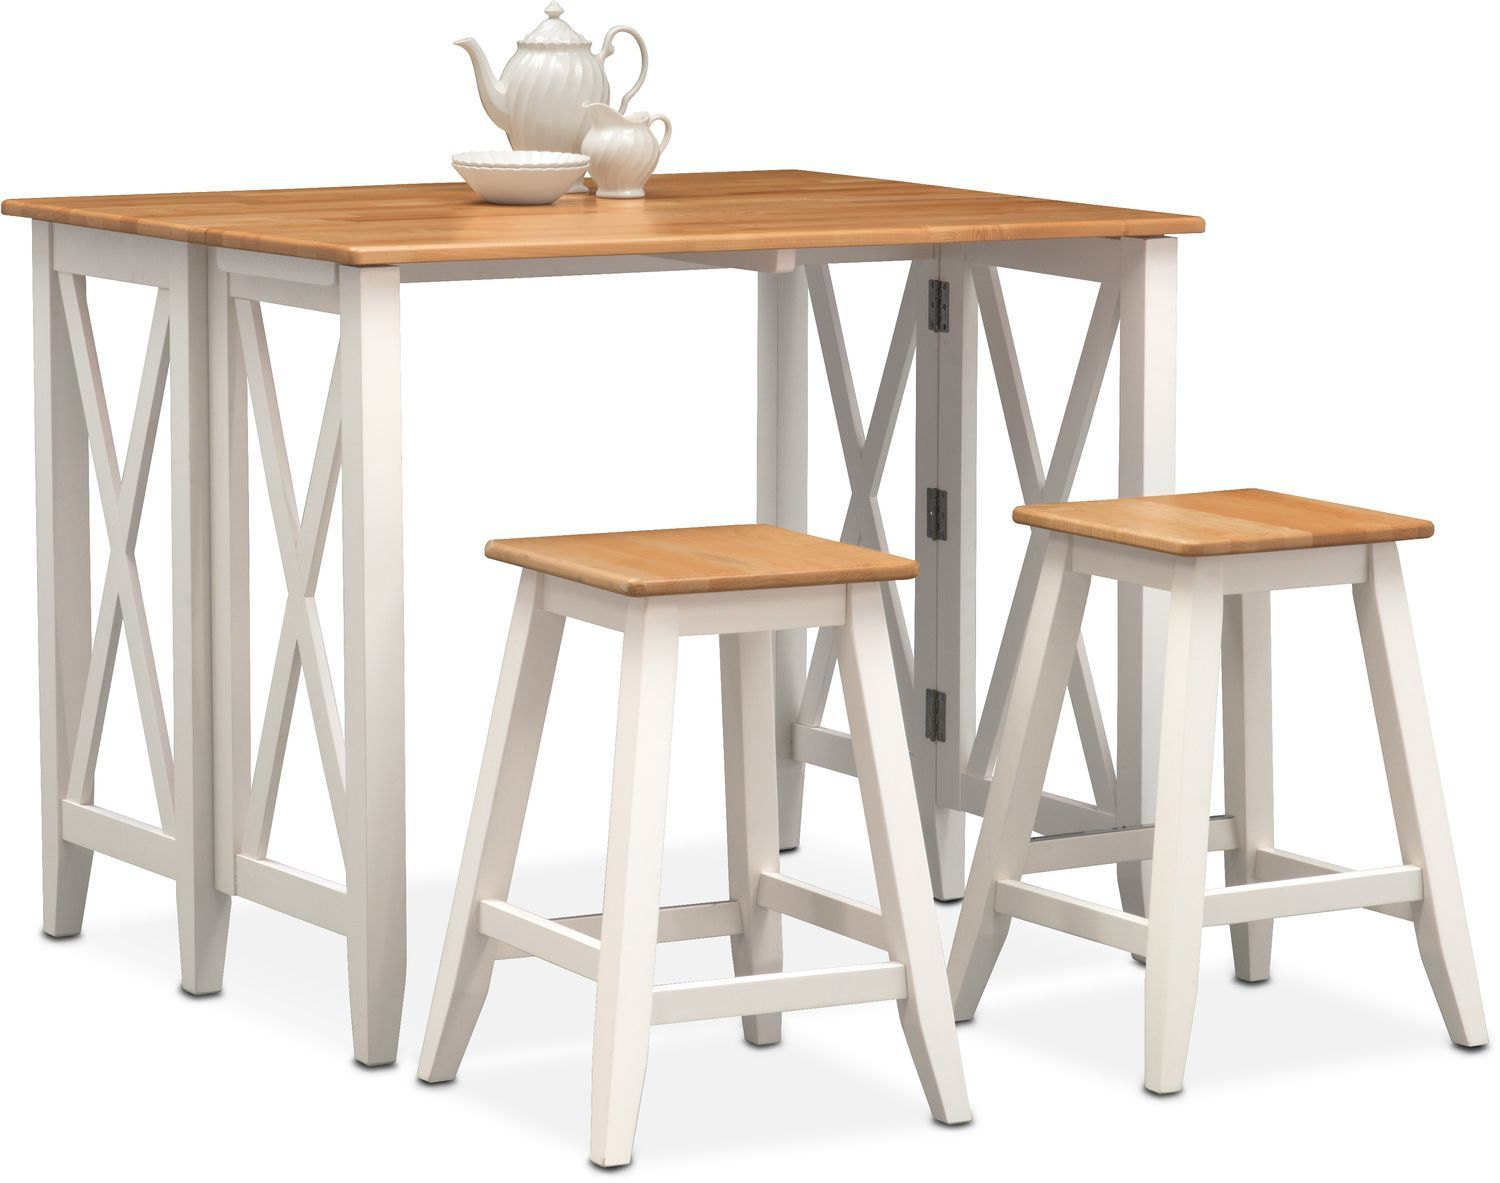 Nantucket Breakfast Bar And 2 Counter Height Stools Counter Height Stools Breakfast Bar Stools Value City Furniture